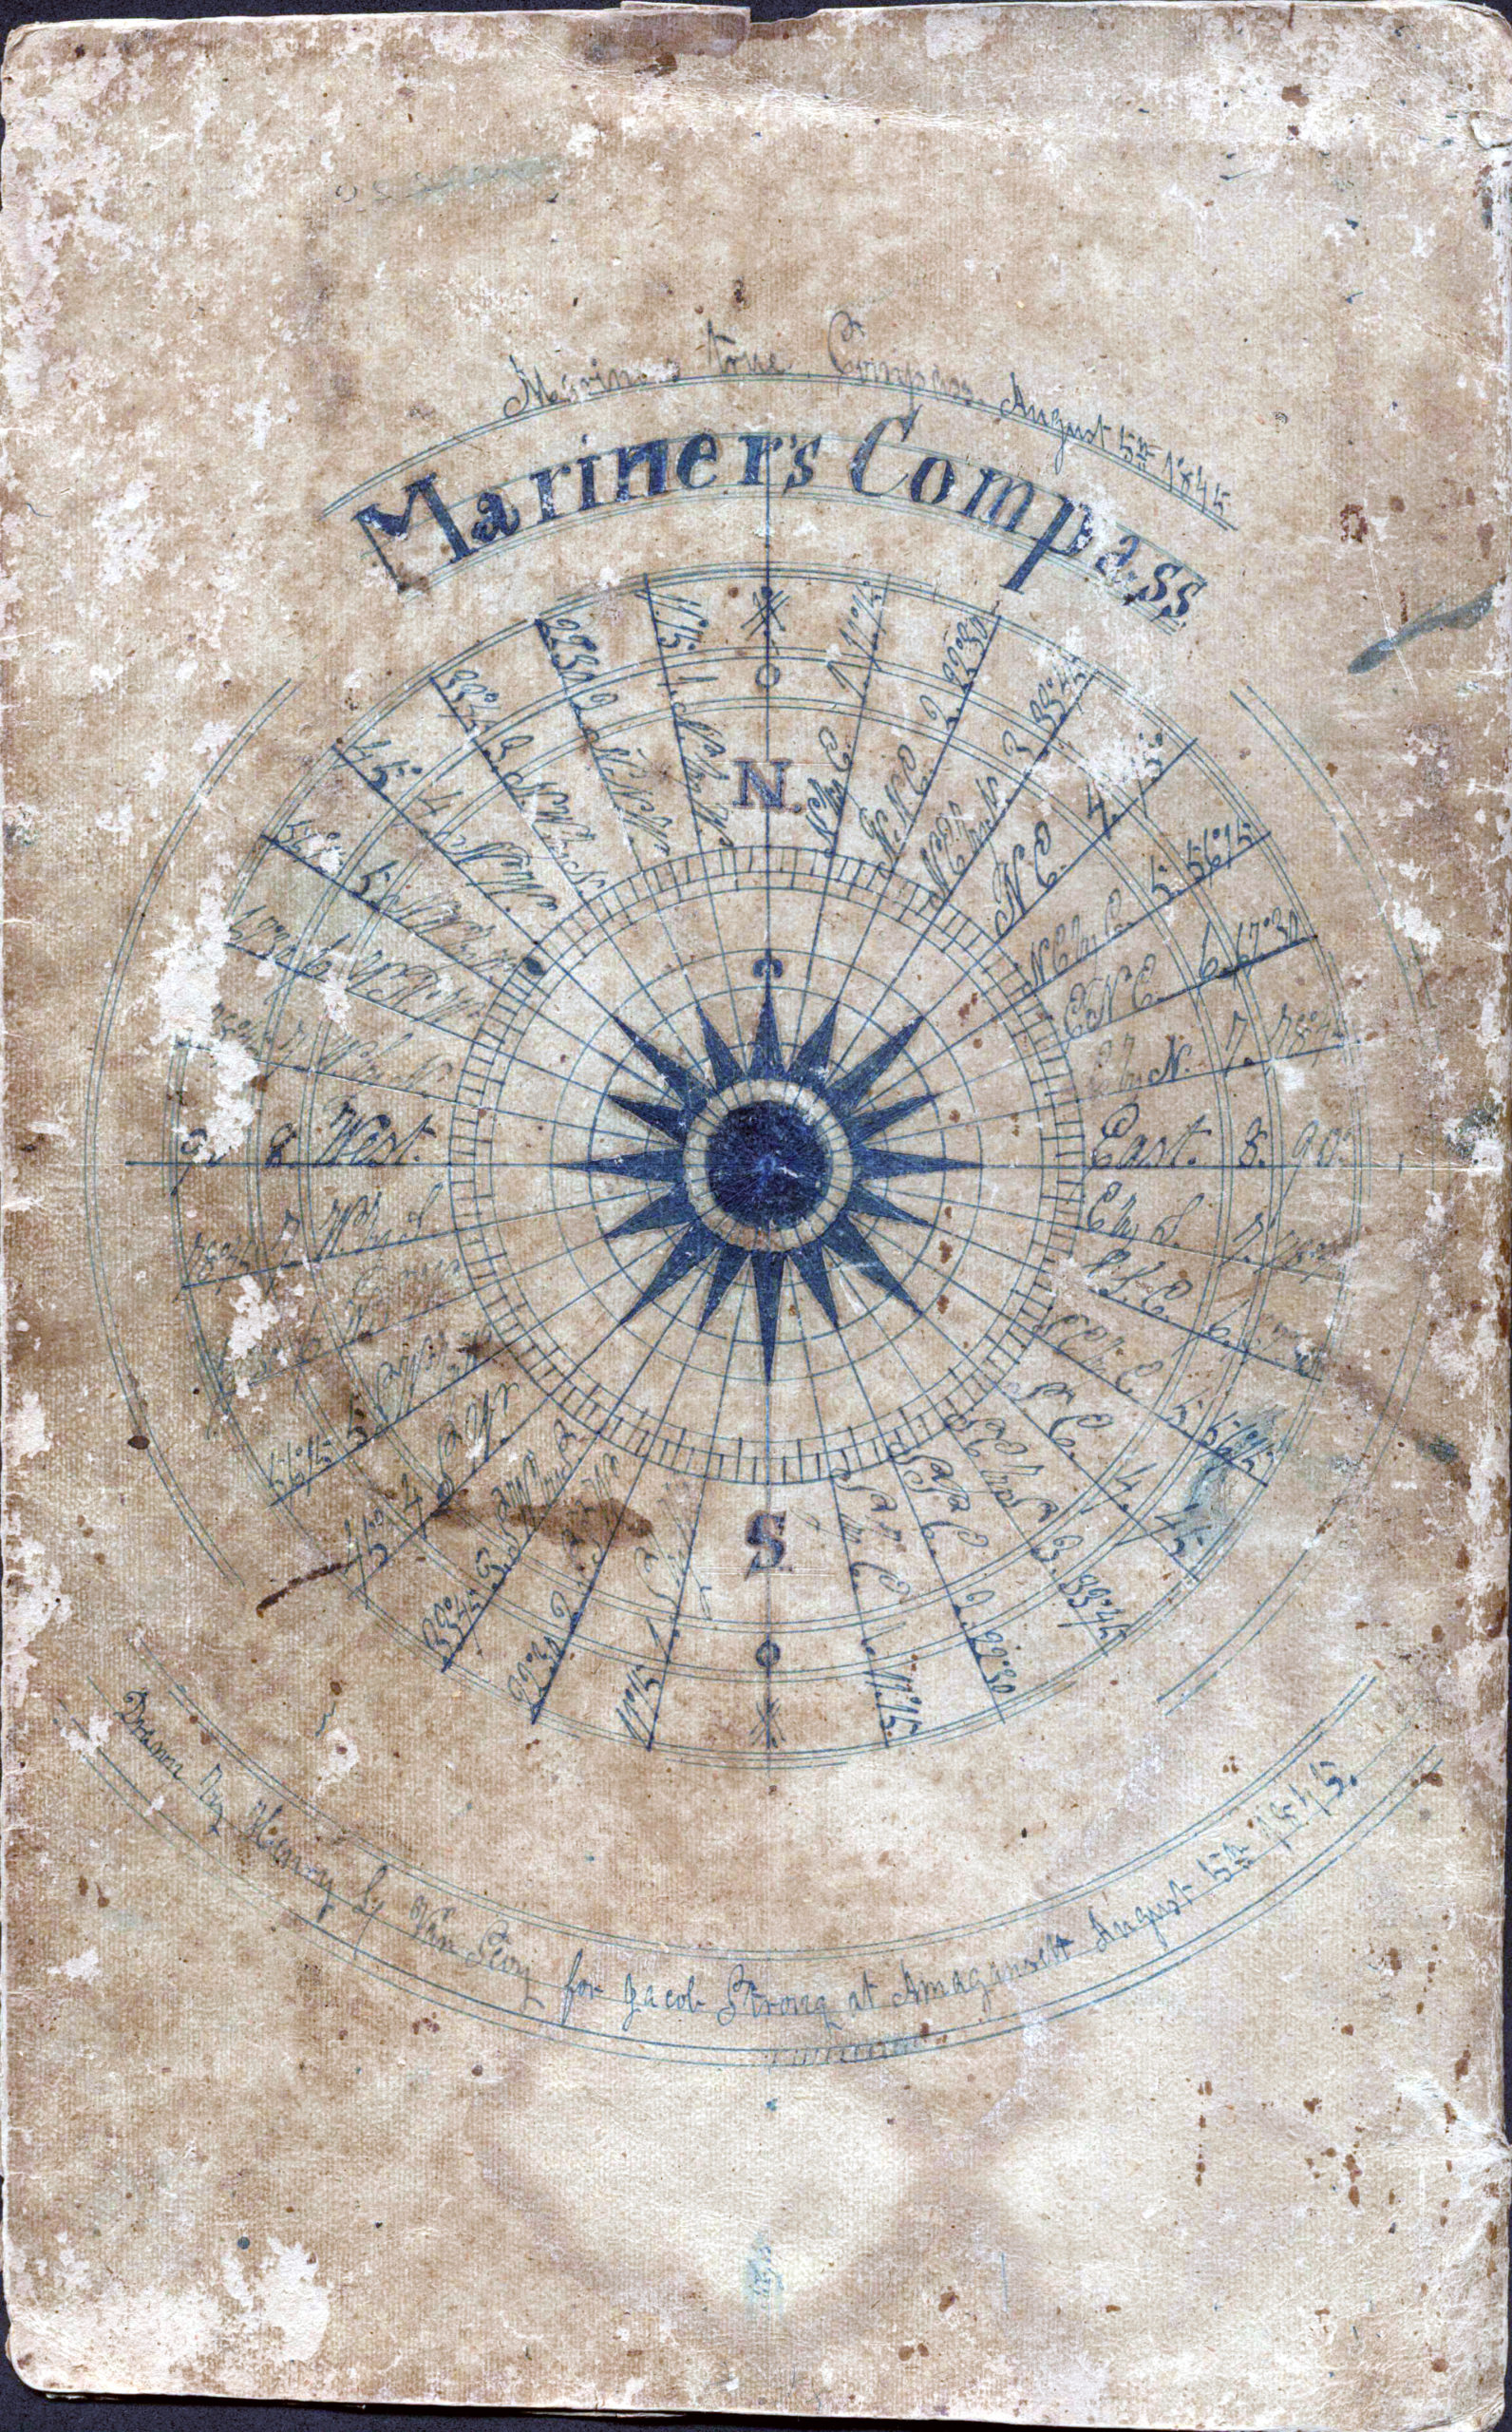 The double-sided, back cover illustration of  a mariner's compass, possibly drawn by Henry L. Van Scoy, according to